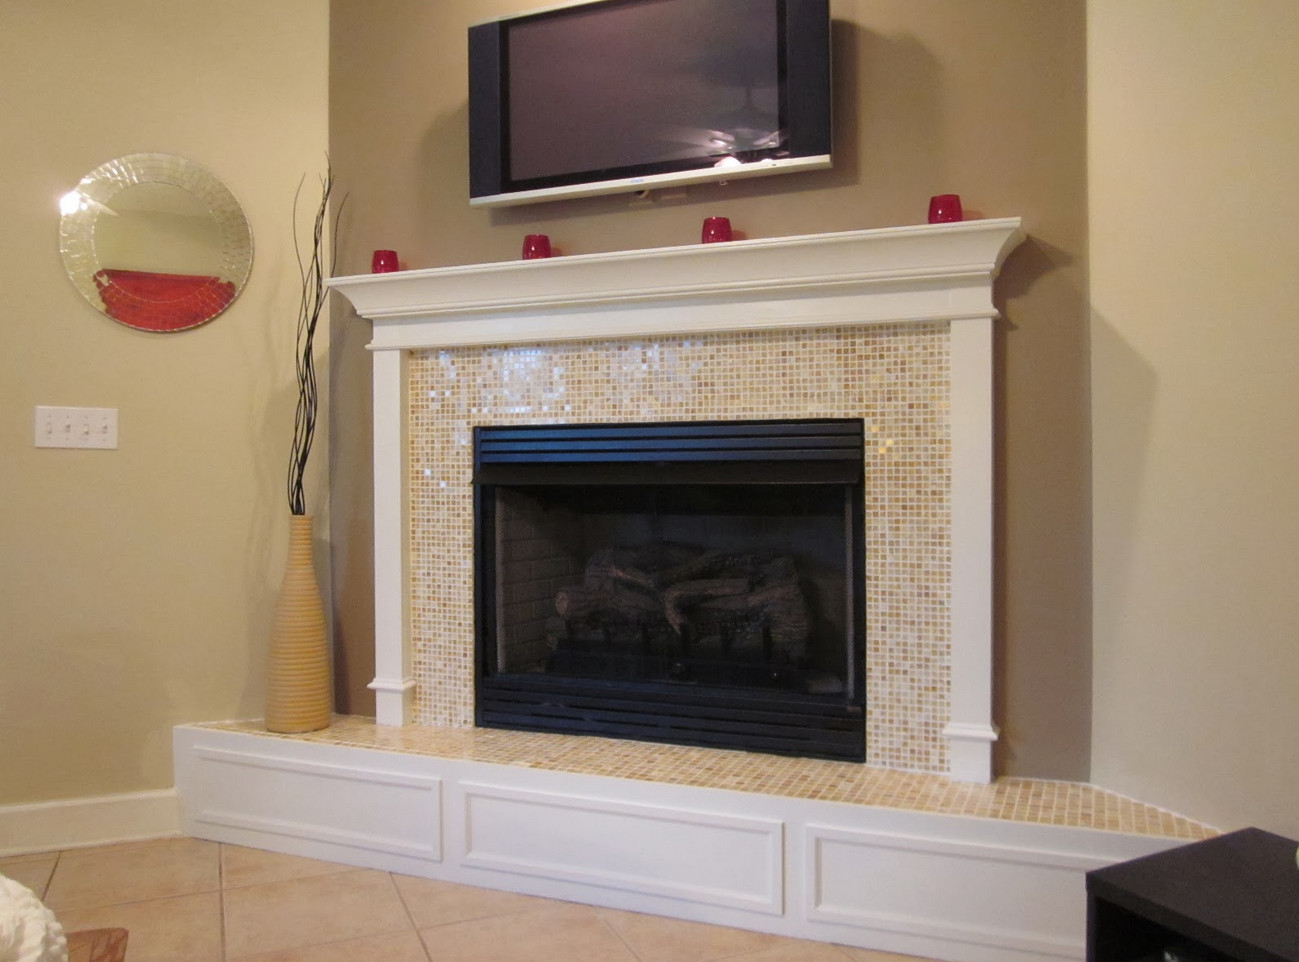 Fireplace Mantels And Surrounds Ideas Impressive Fireplace Mantels And Surrounds Ideas  Interior Design Ideas Review